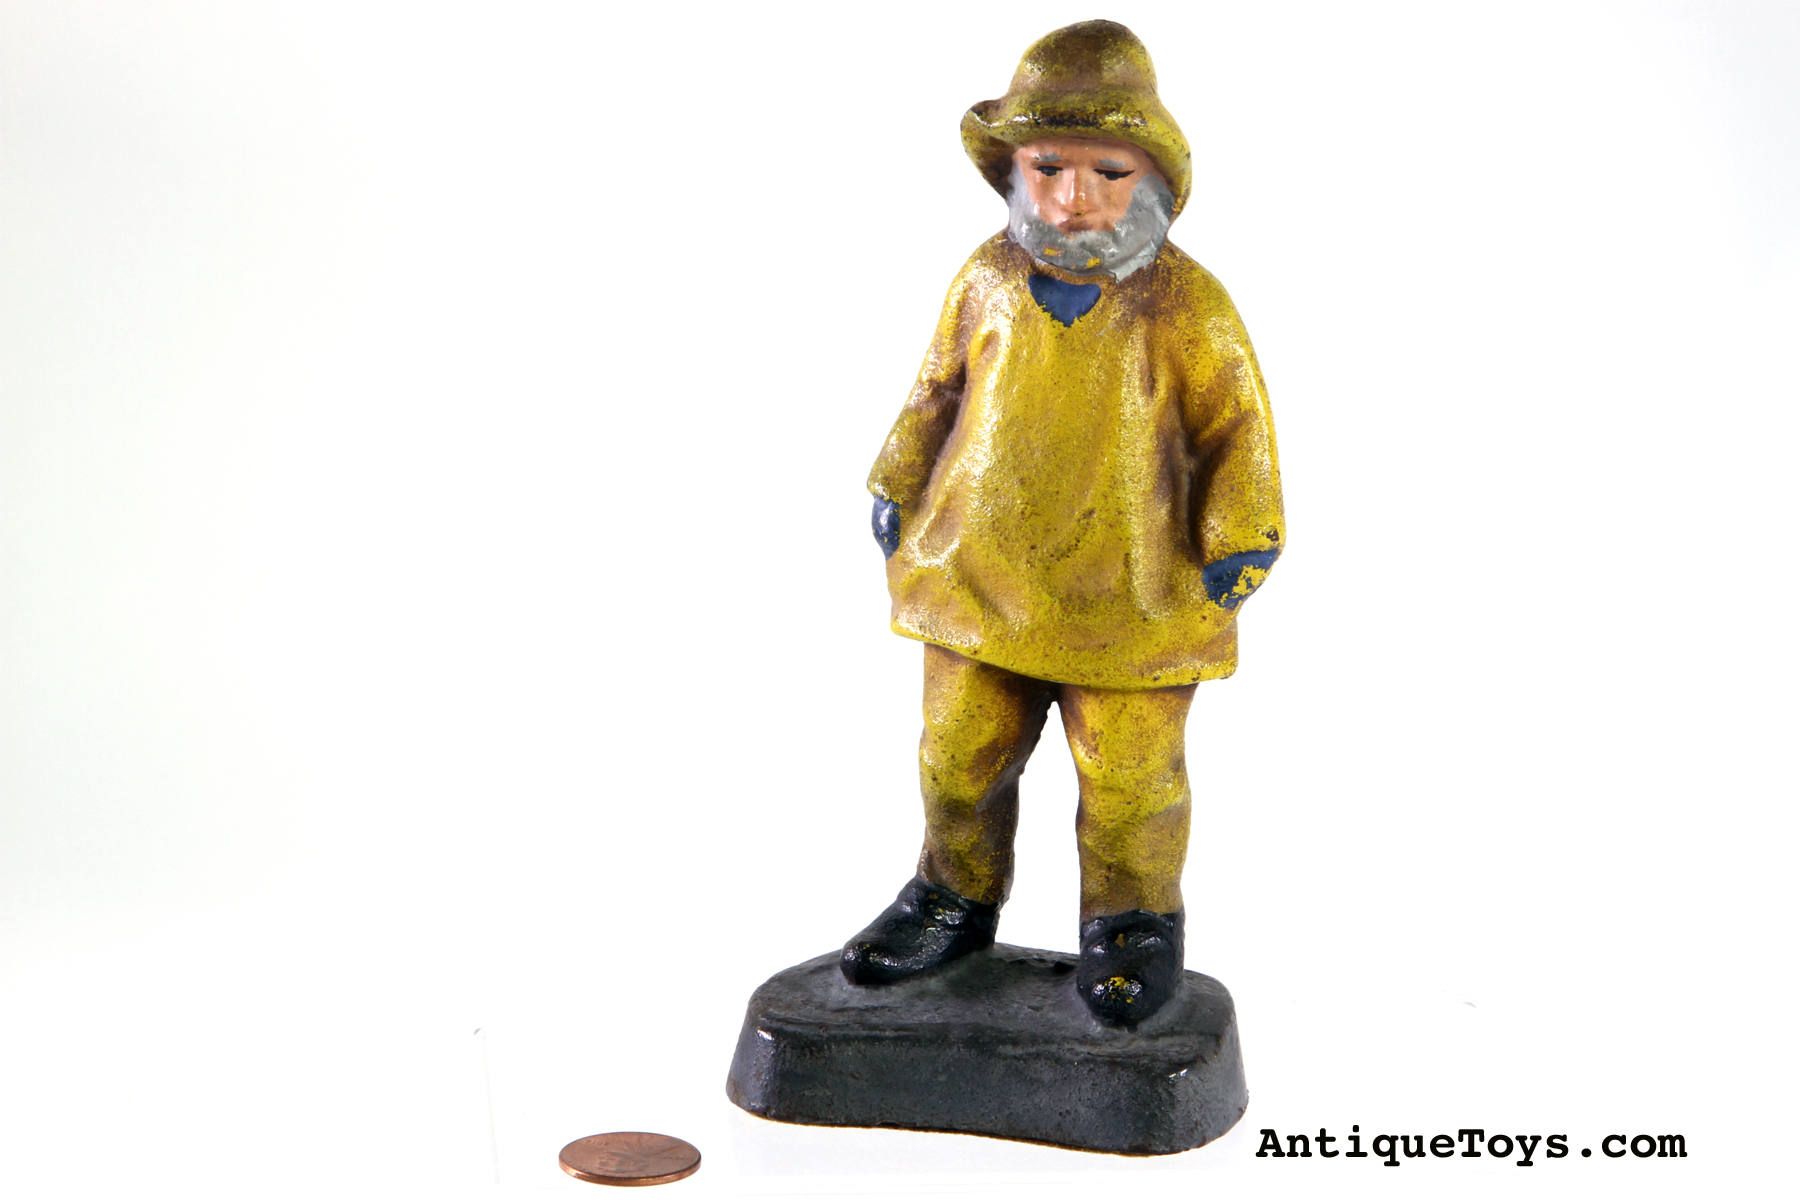 toy airplanes for sale with Old Salt Cast Iron Fisherman Statue on 7ec7e573 0836 4d0f 8562 D688026a386b in addition Hubley Bell Aircuda Xfm 1 Airplane further Airport VIP Service additionally MAN 1951 08 together with Alps Chrysler 1958 Holy Grail Japanese Tin Car.